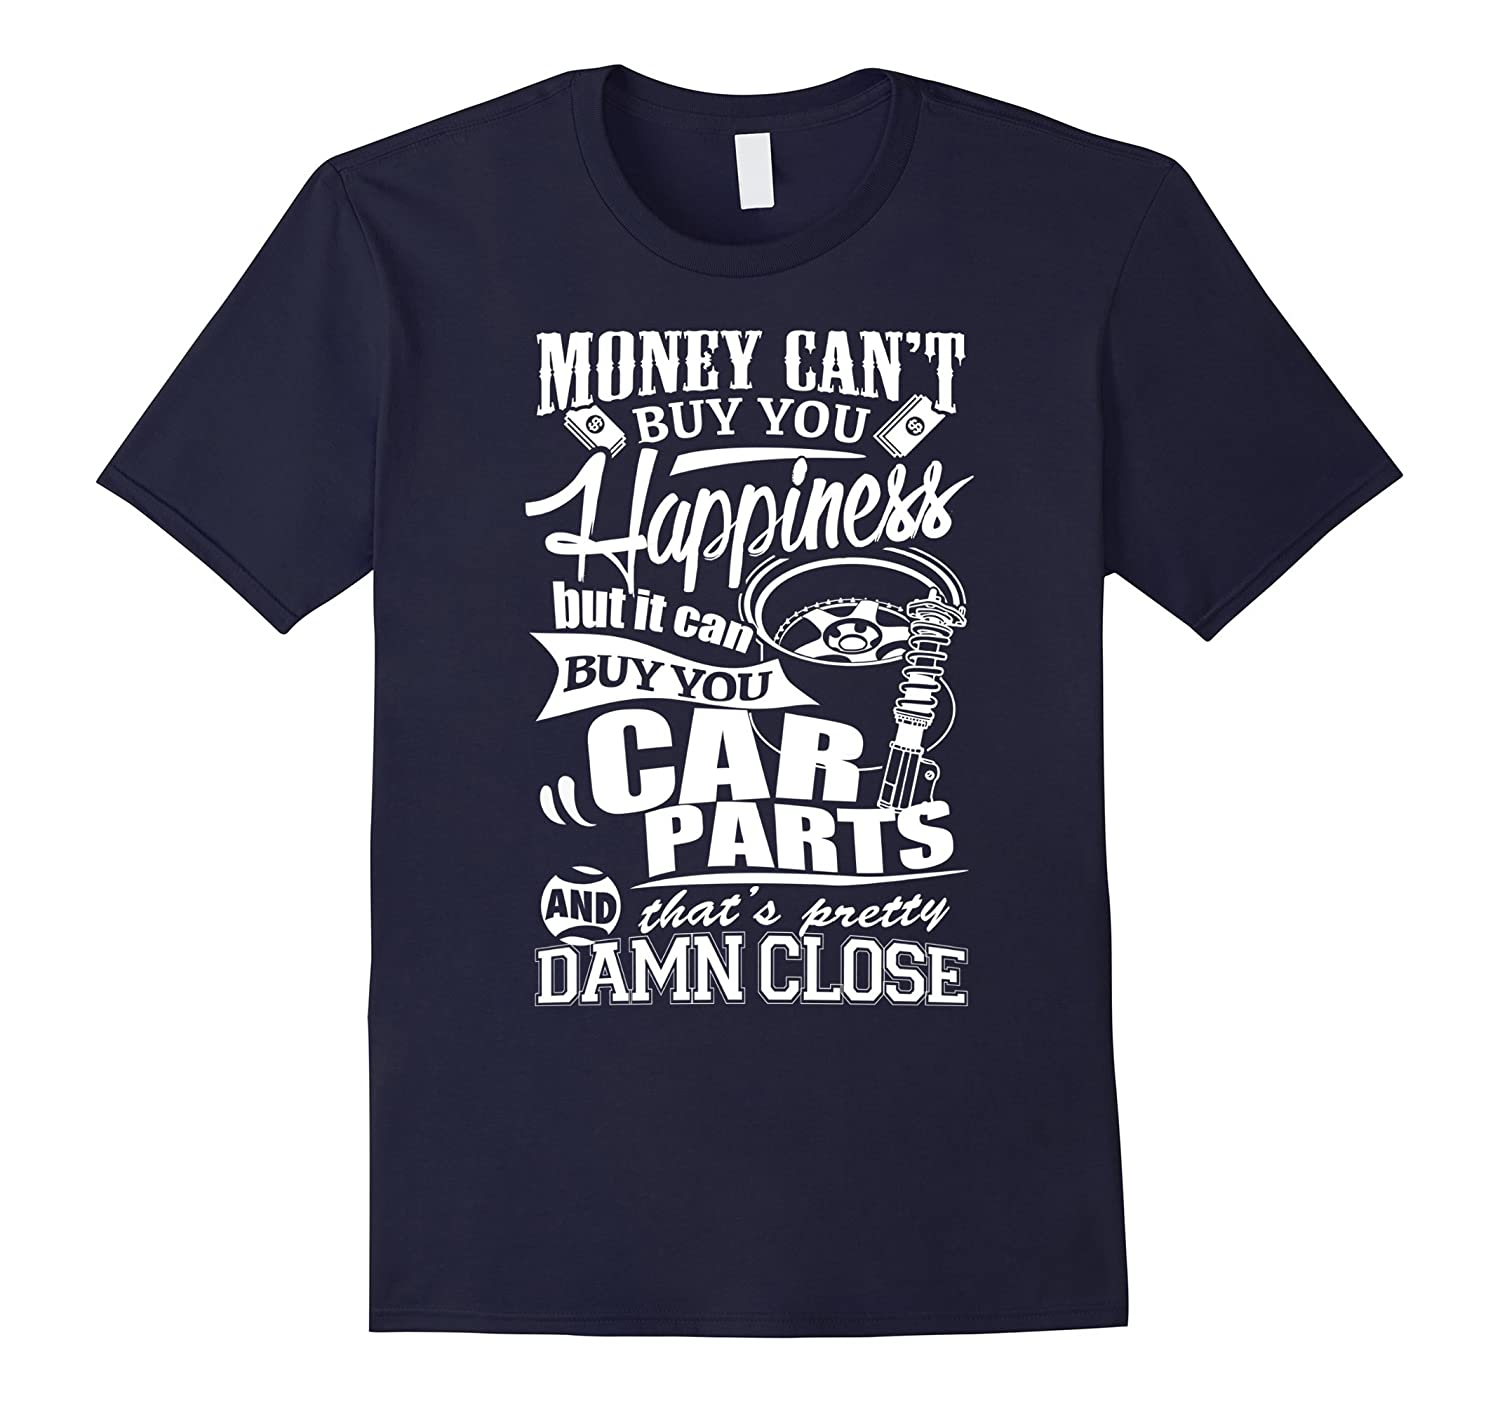 money cant buy you happiness but can buy car parts t shirt goatstee. Black Bedroom Furniture Sets. Home Design Ideas